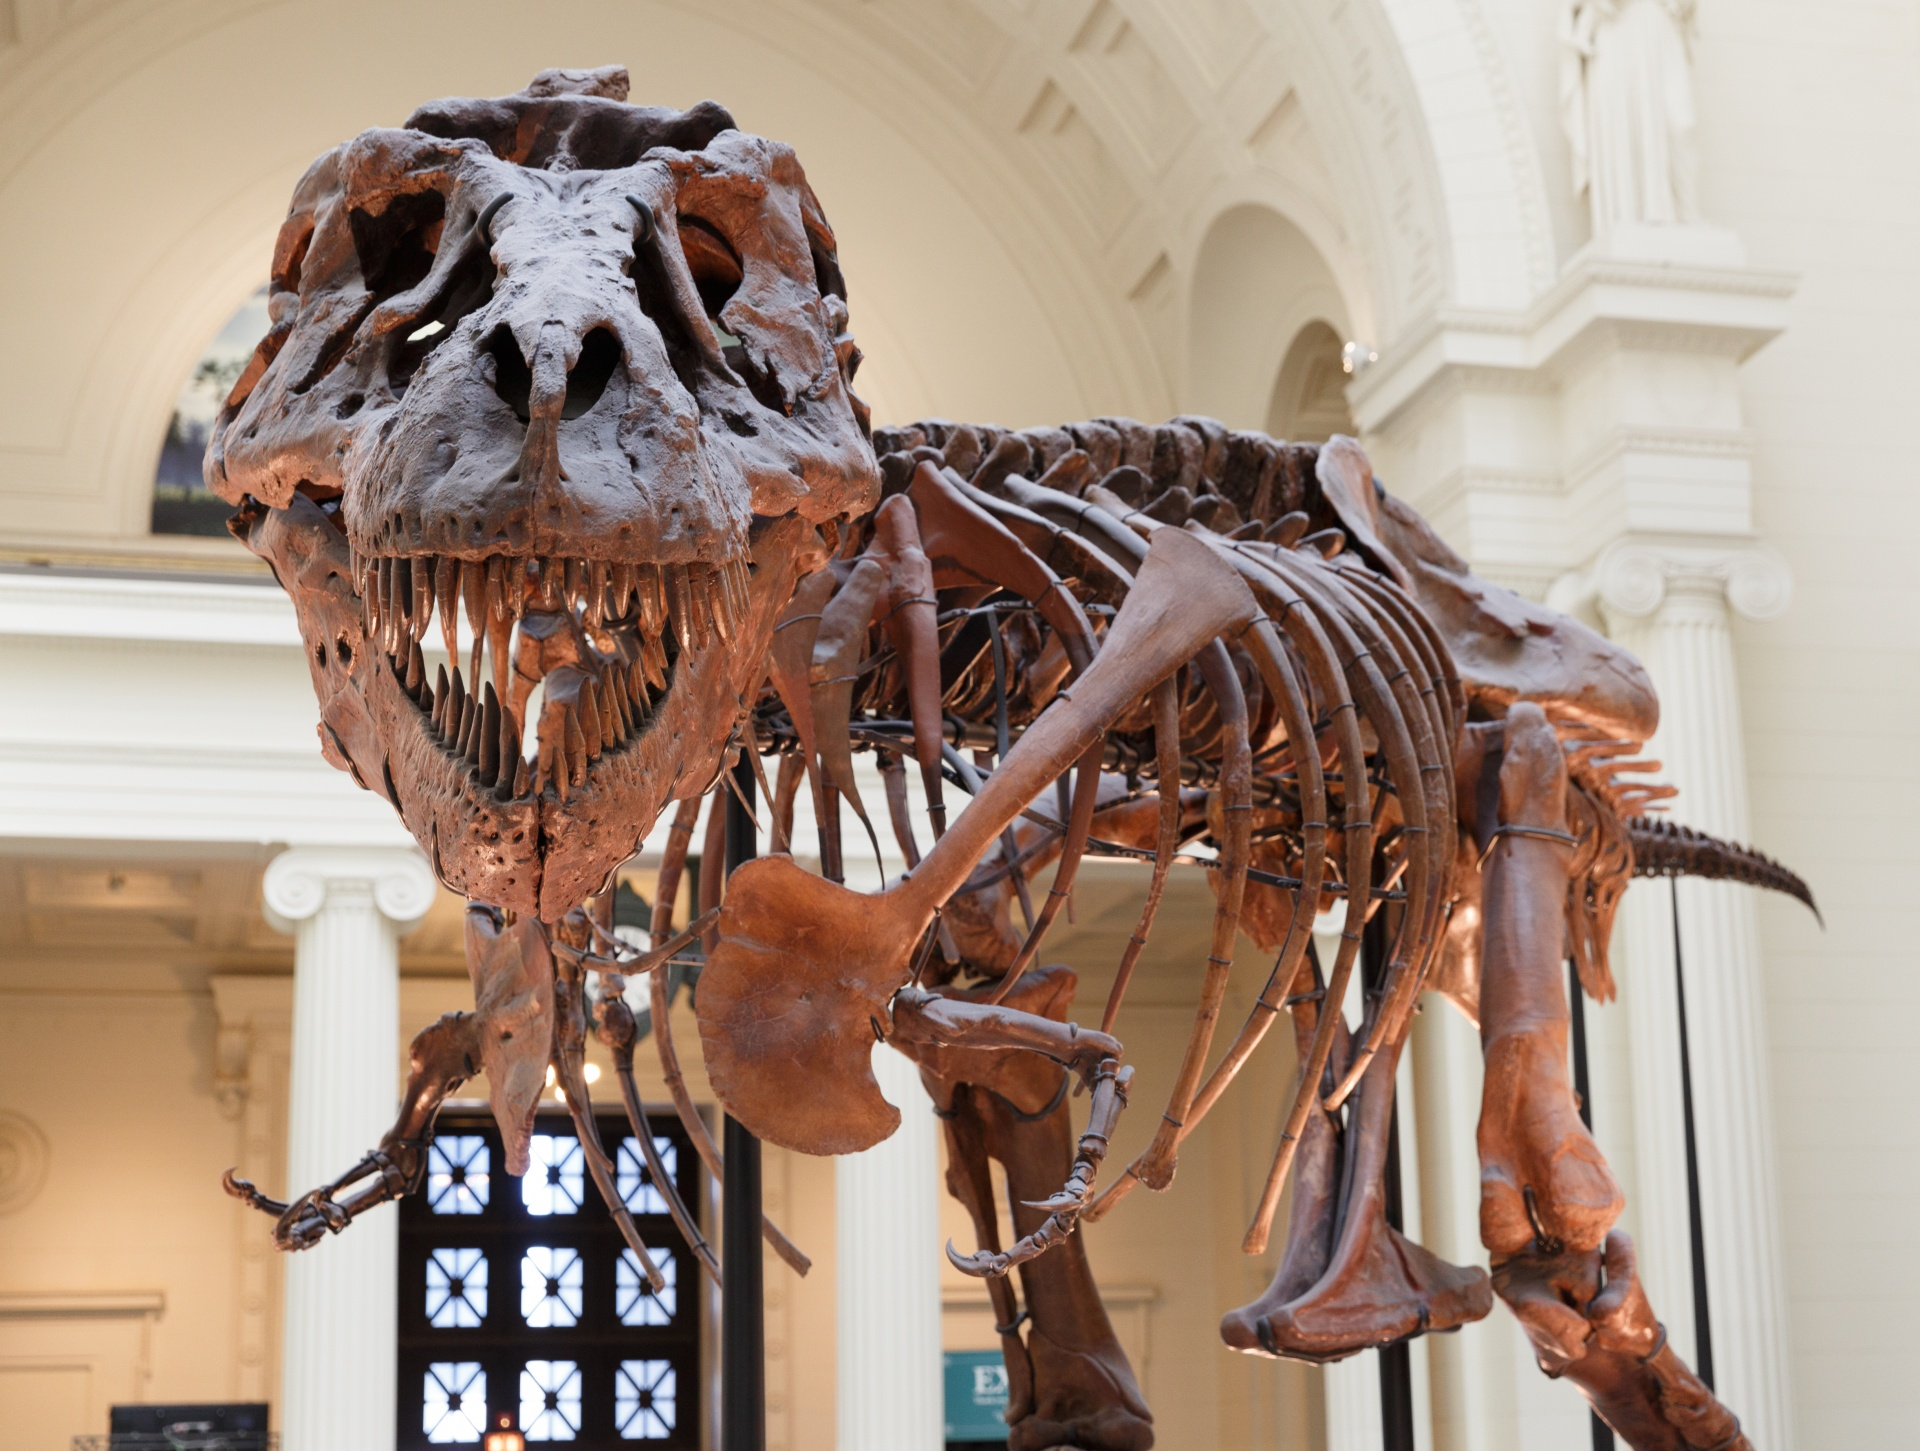 Which of these animals existed closest in time to Tyrannosaurus?